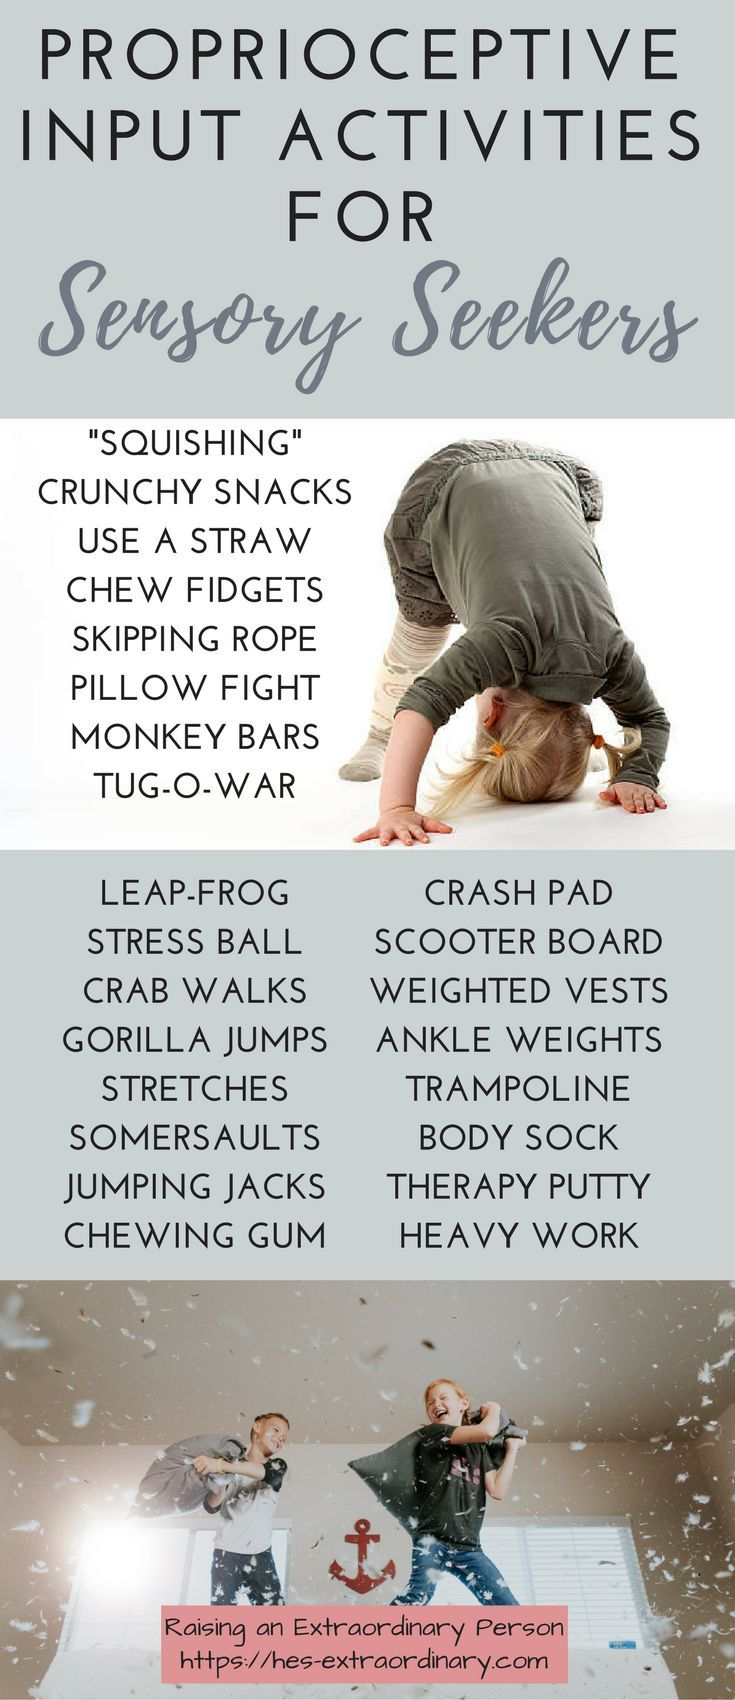 I'm going to share a little information on daily activities that you can do with your children to give them more proprioceptive input which can help tremendously with sensory seeking behavior. Also, take some time to read how you can improve emotional regulation in 7 minutes per day which includes tons of proprioceptive input activities.